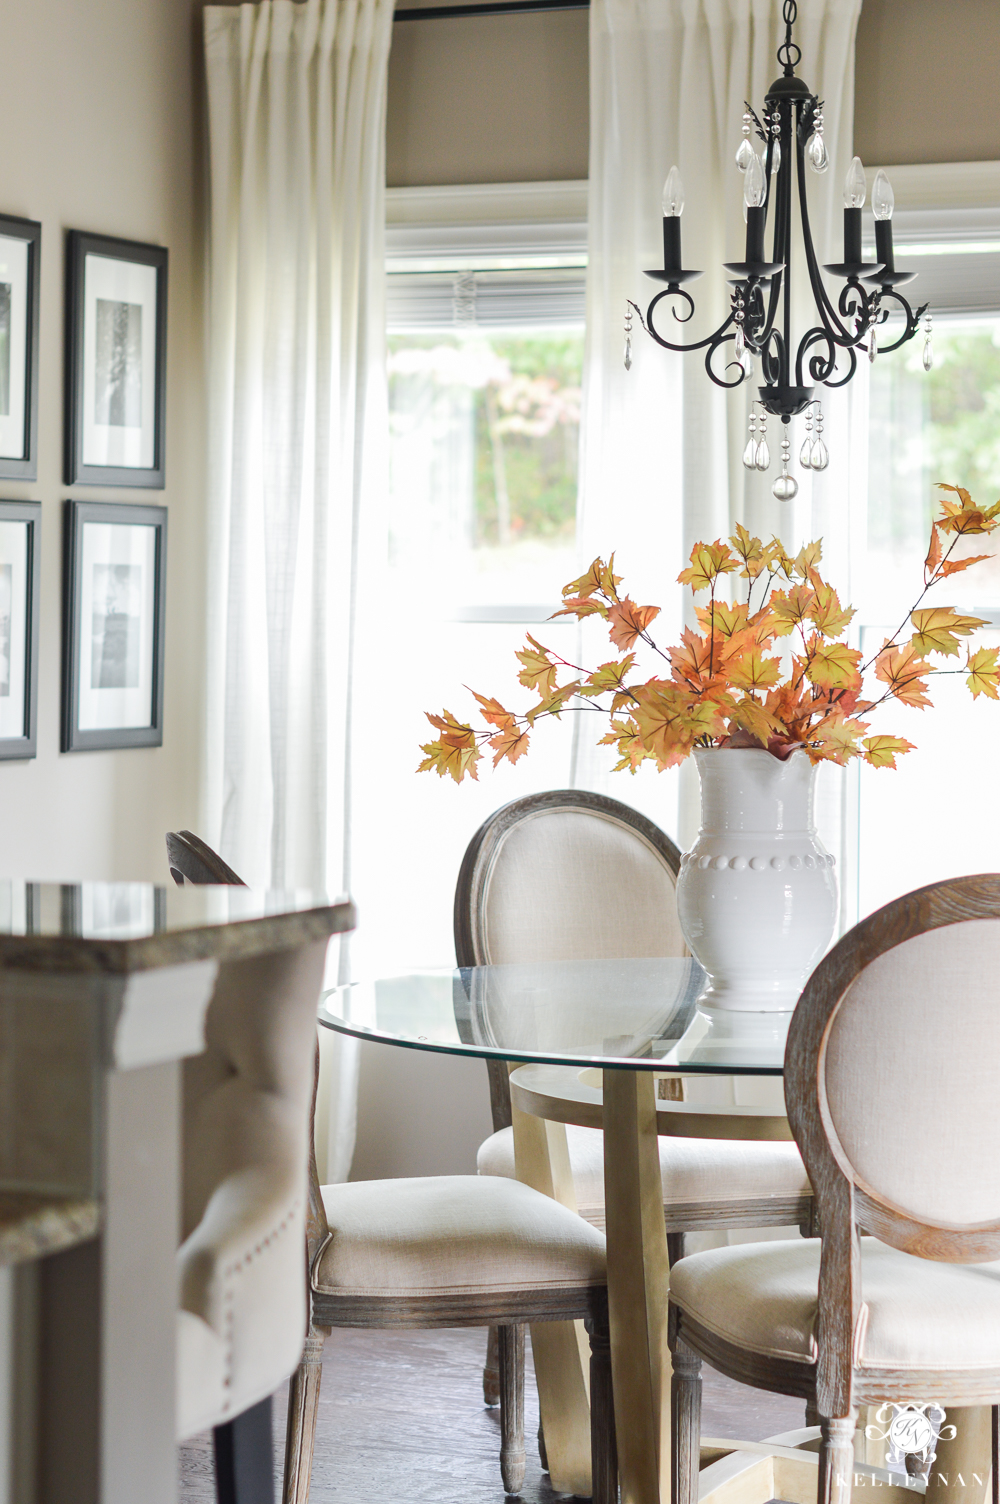 2017 Fall Home Tour with Yellow and Orange Leaves- breakfast nook with leaves